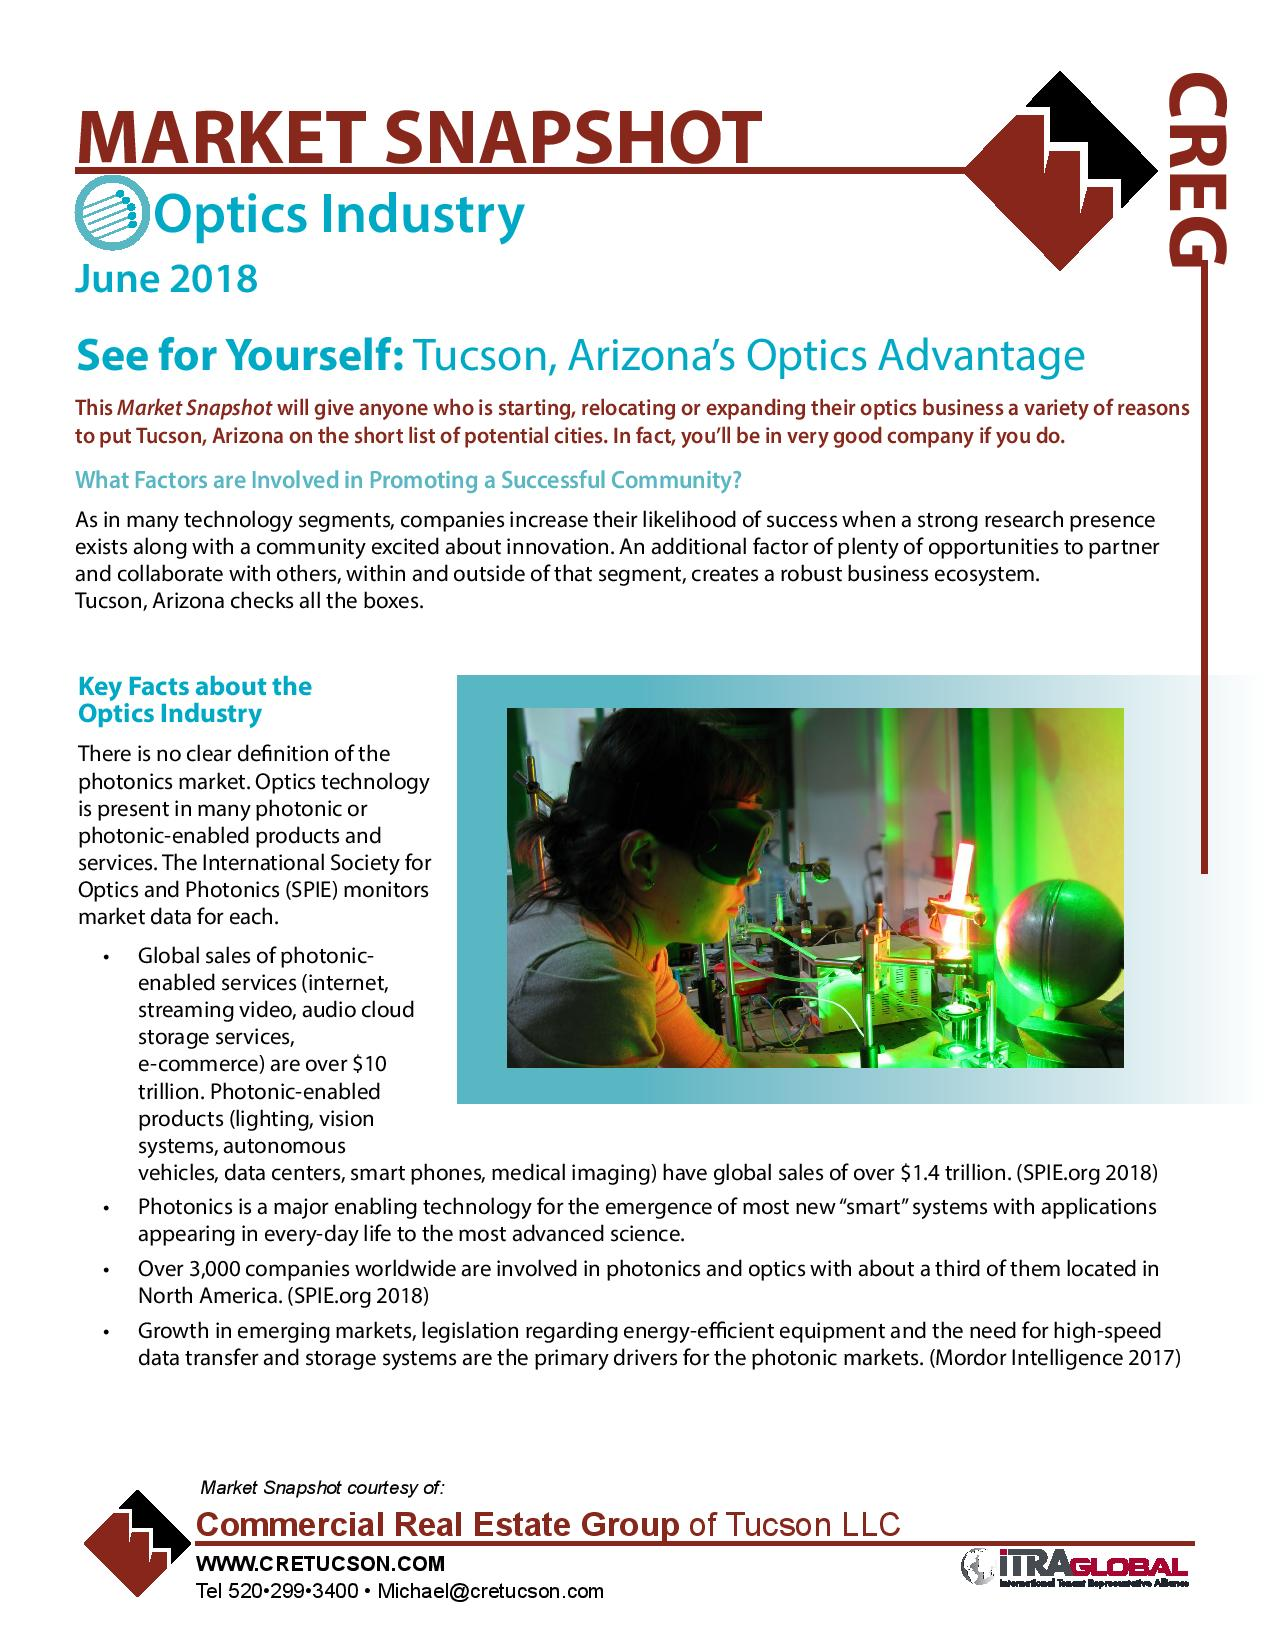 Optics Industry Market Snapshot - Tucson, Arizona